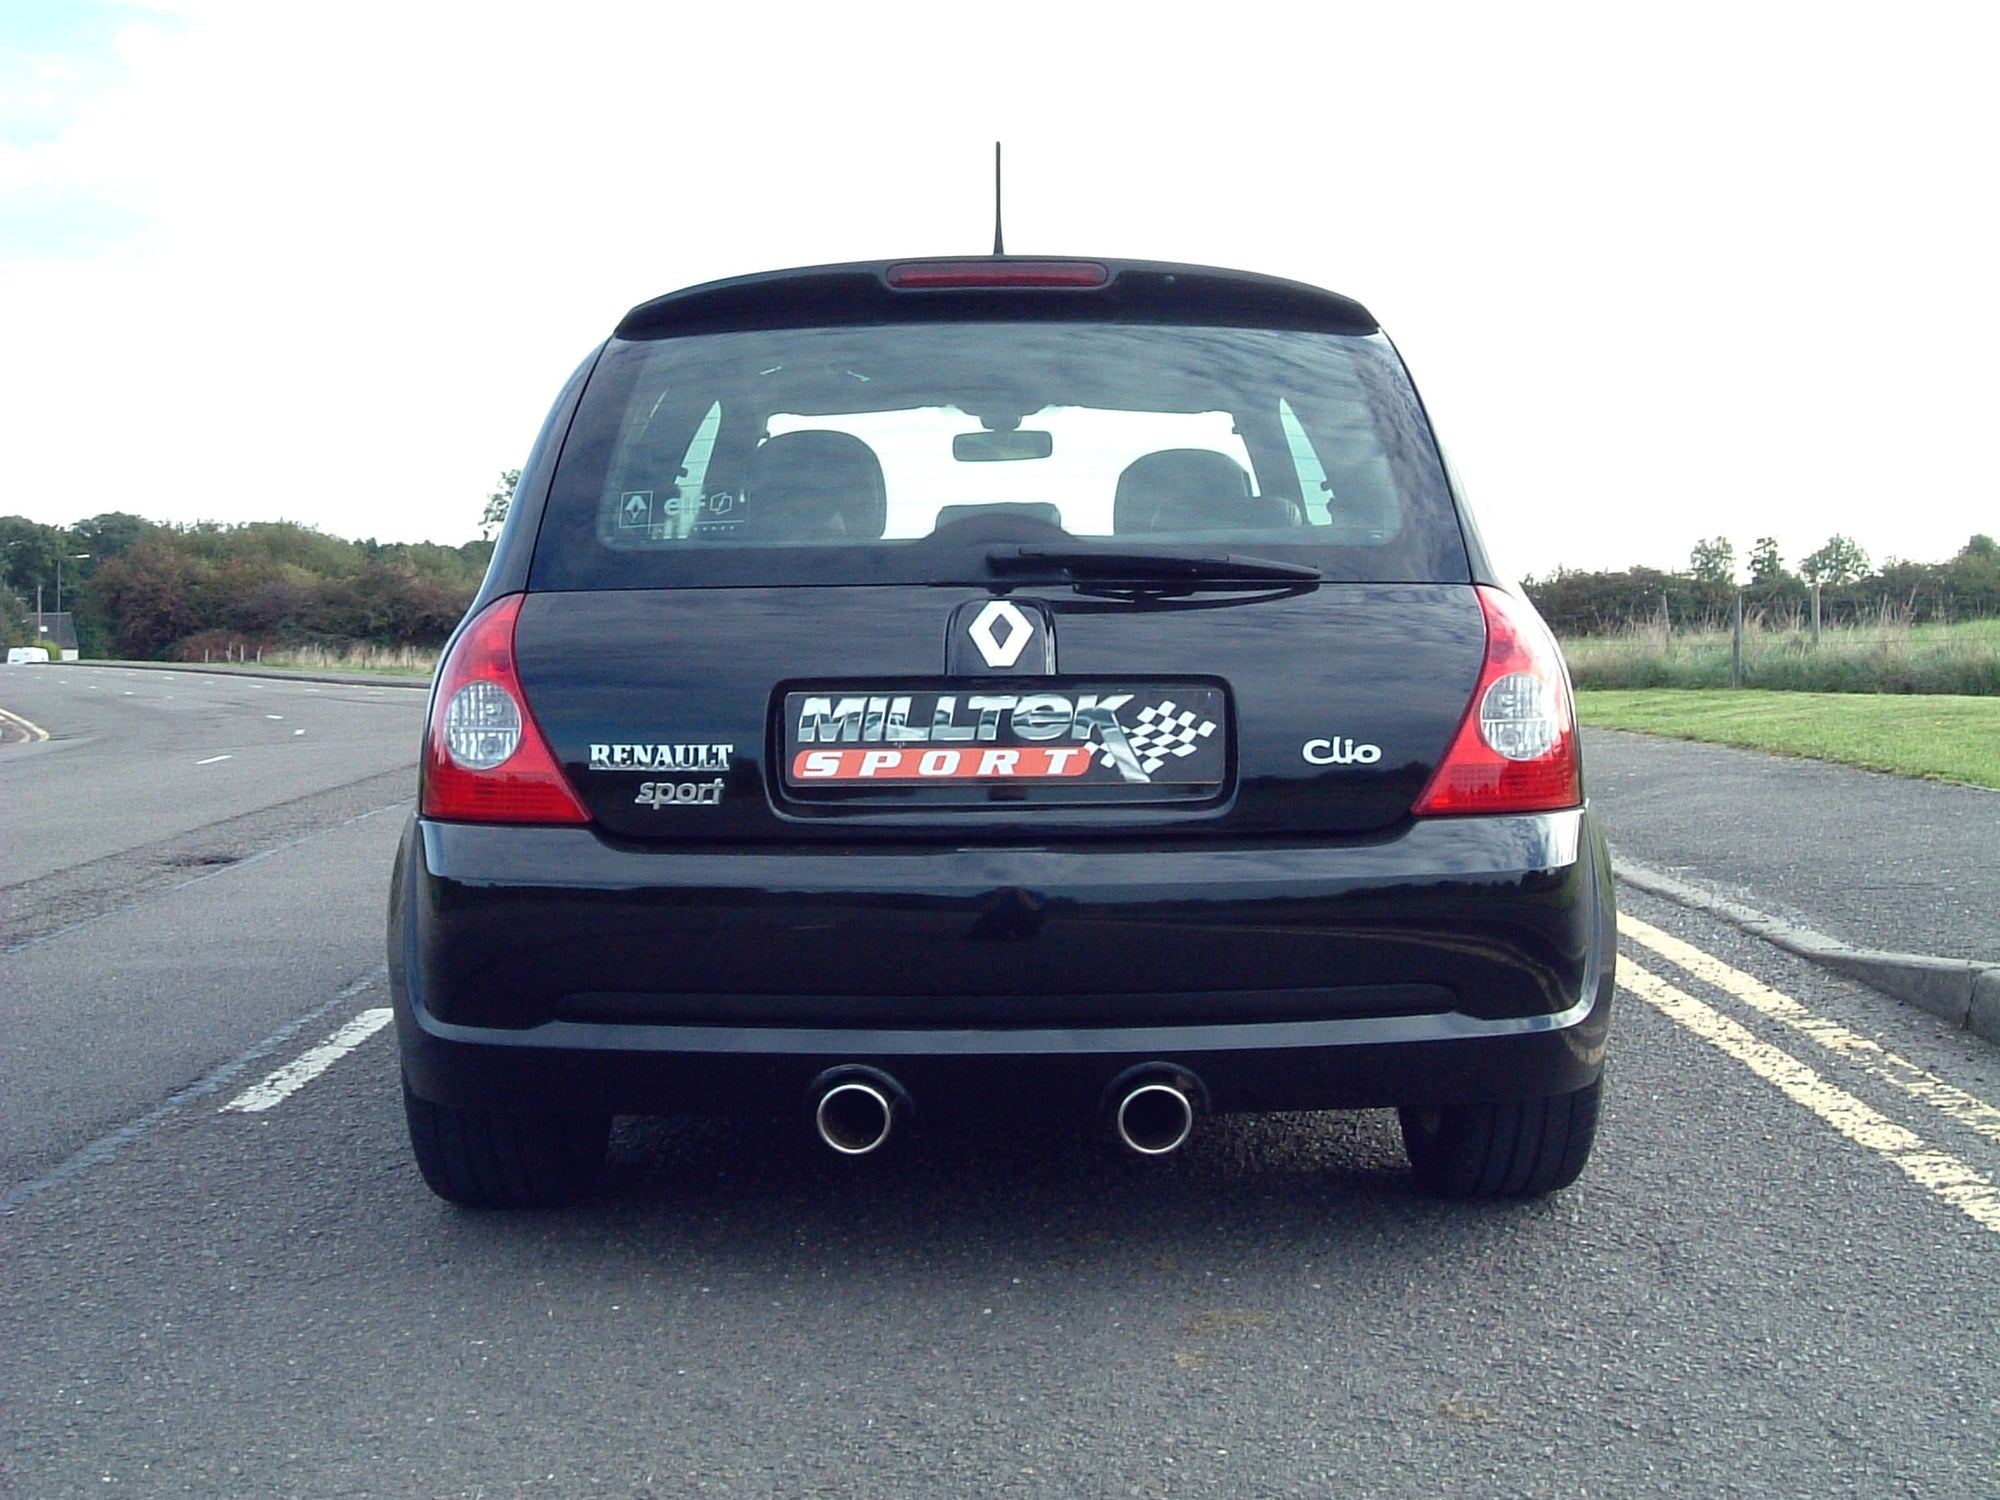 Milltek Exhaust Renault Clio 182 2.0 16v Full System (including Hi-Flow Sports Cat) with Dual 90mm Jet tailpipe (SSXRN203)